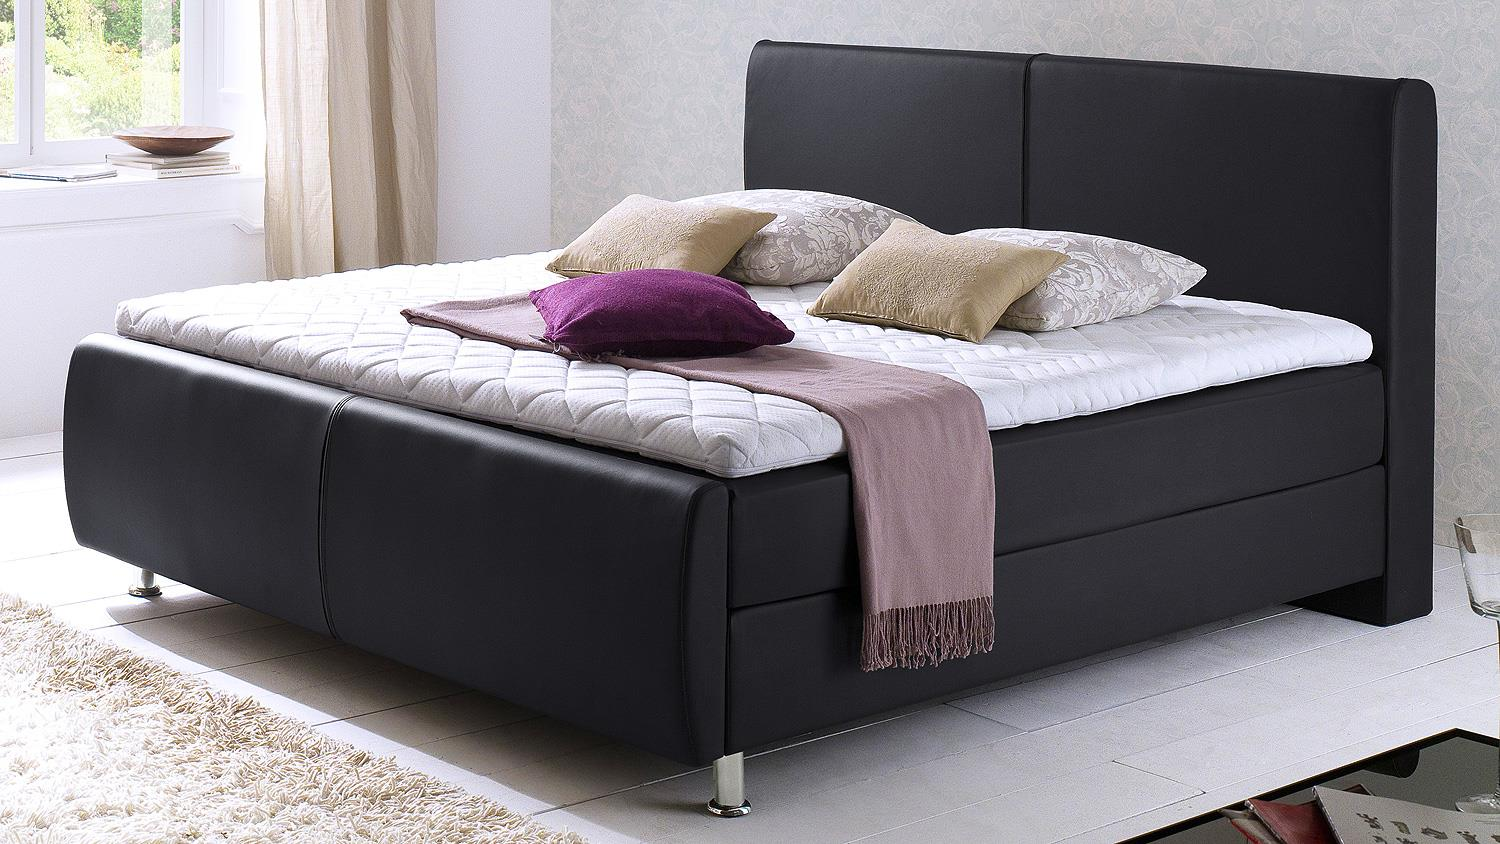 boxspringbett amadeo schwarz mit kopfteil topper 180x200. Black Bedroom Furniture Sets. Home Design Ideas